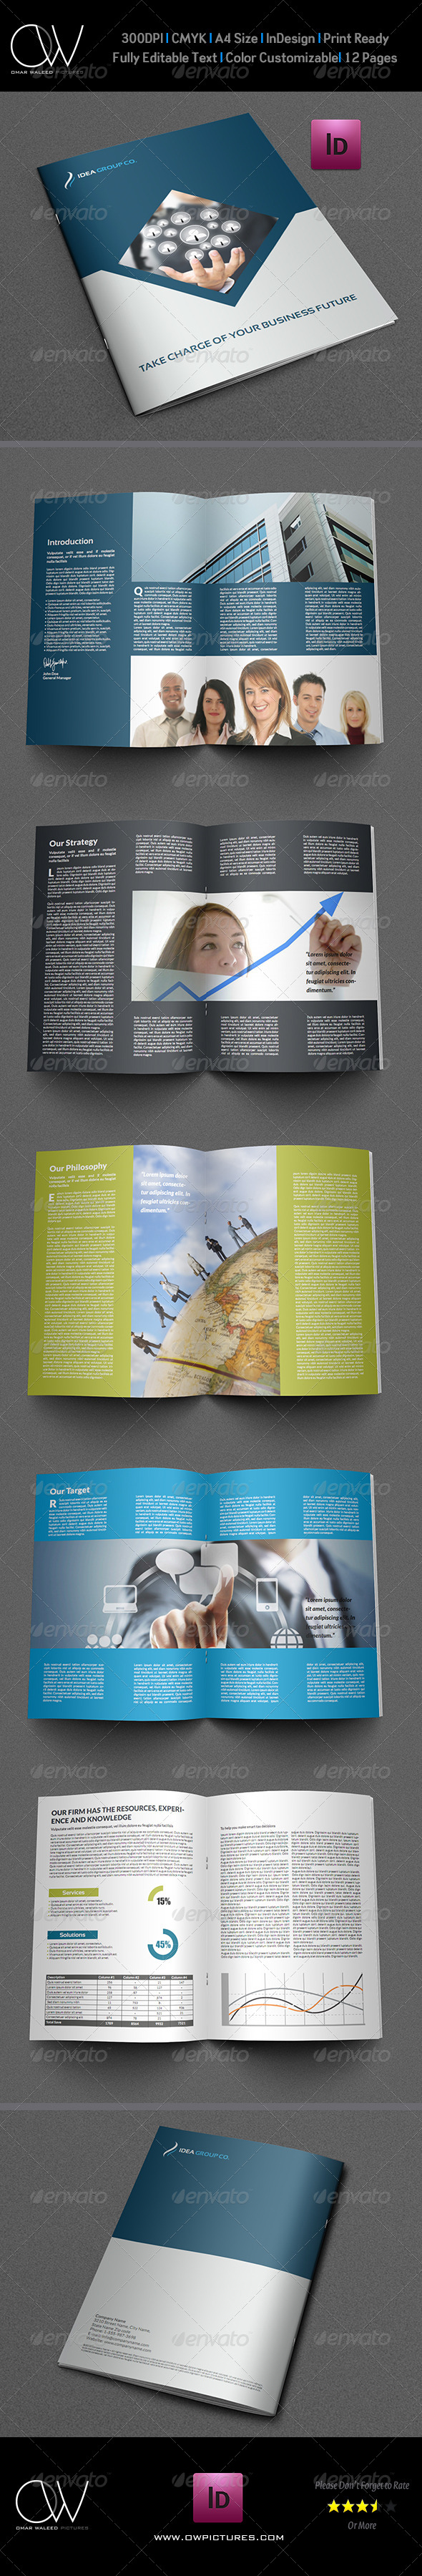 GraphicRiver Company Brochure Template Vol.9 12 Pages 5599953